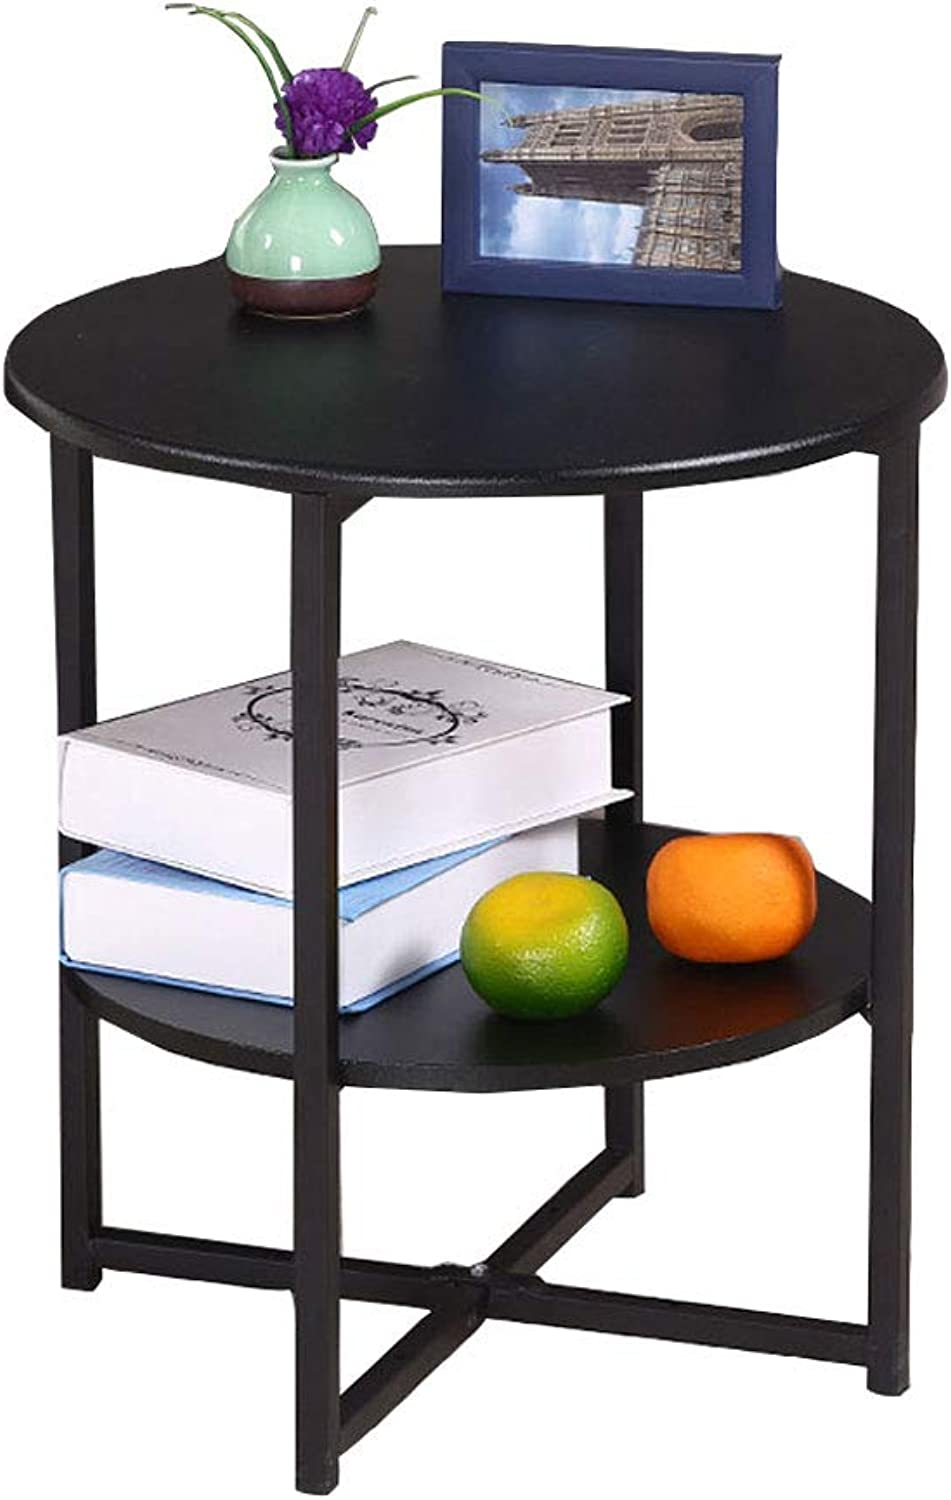 Small Coffee Table Simple Sofa Side Table Side Cabinet Small Round Table Phone Stand Small Side Table Corner Table (color   Black)